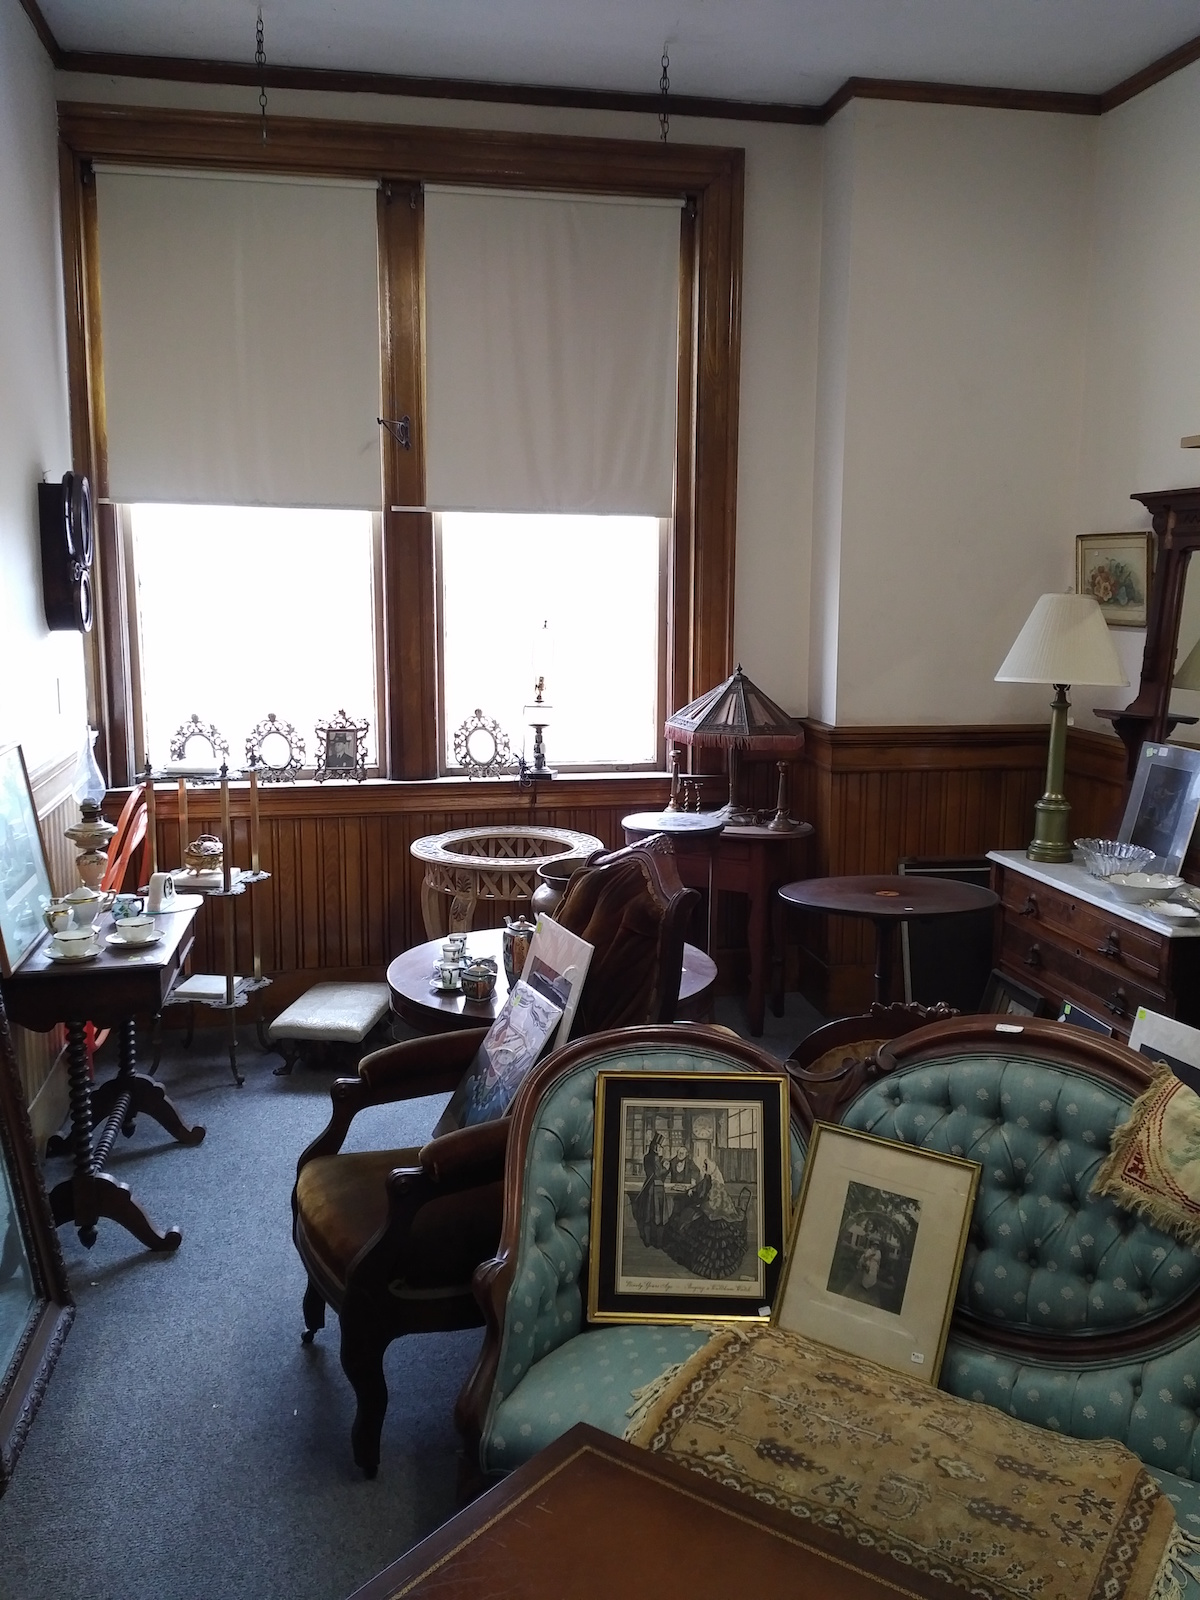 One of the 25 rooms at Hilltop Antiques. . .the view of downtown Skowhegan from those windows is charming.